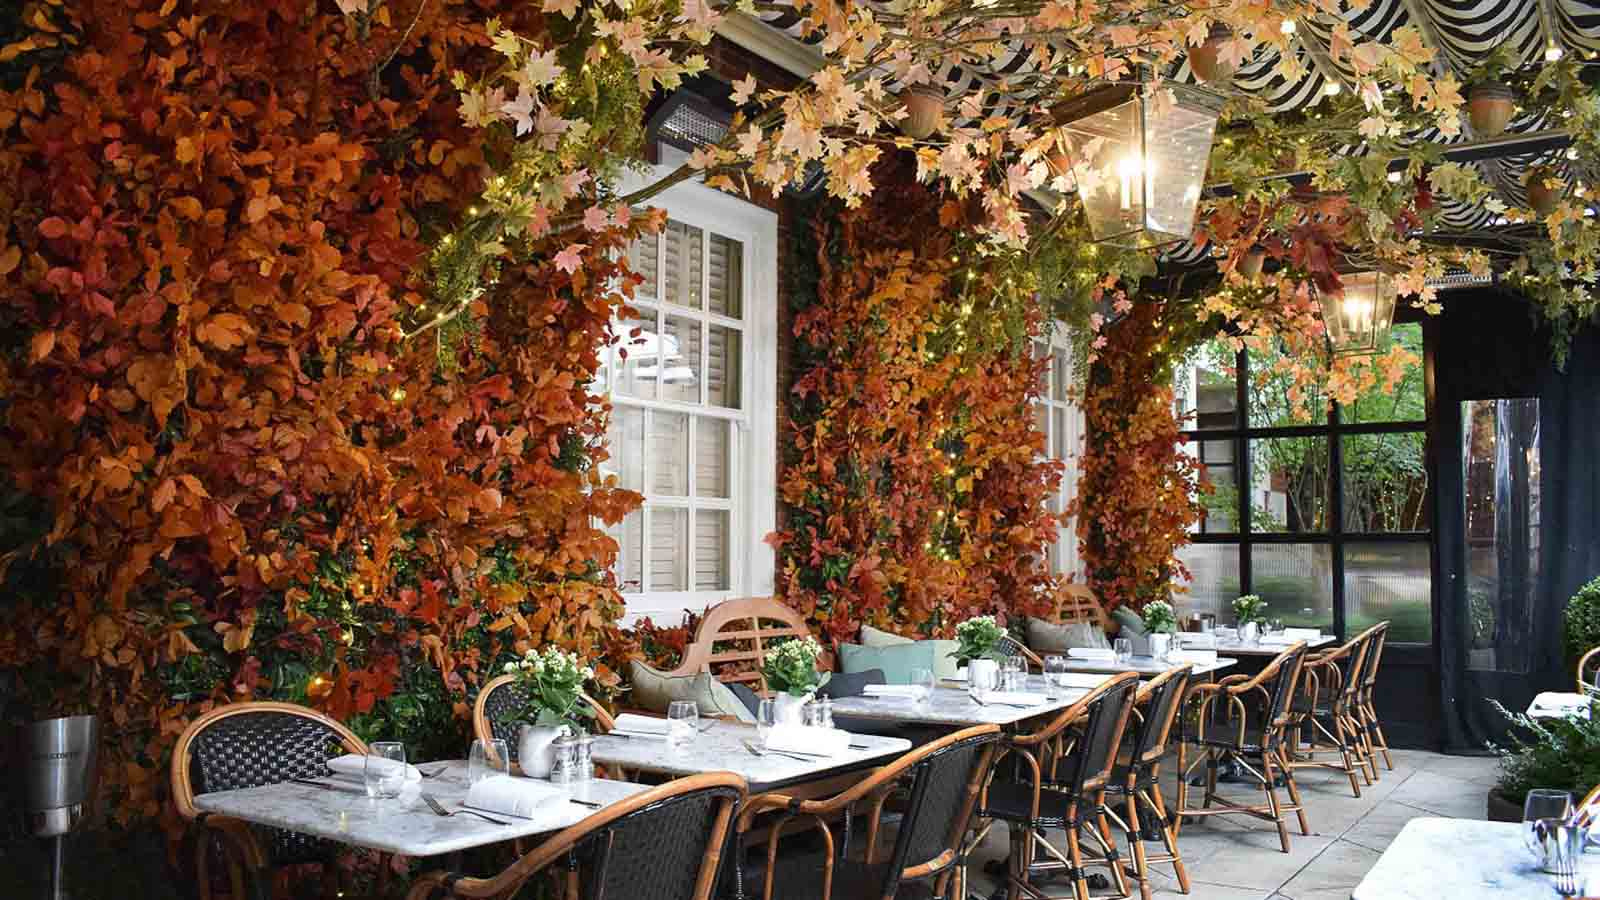 Bloomsbury Hotel's Dalloway terrace cafe in autumn